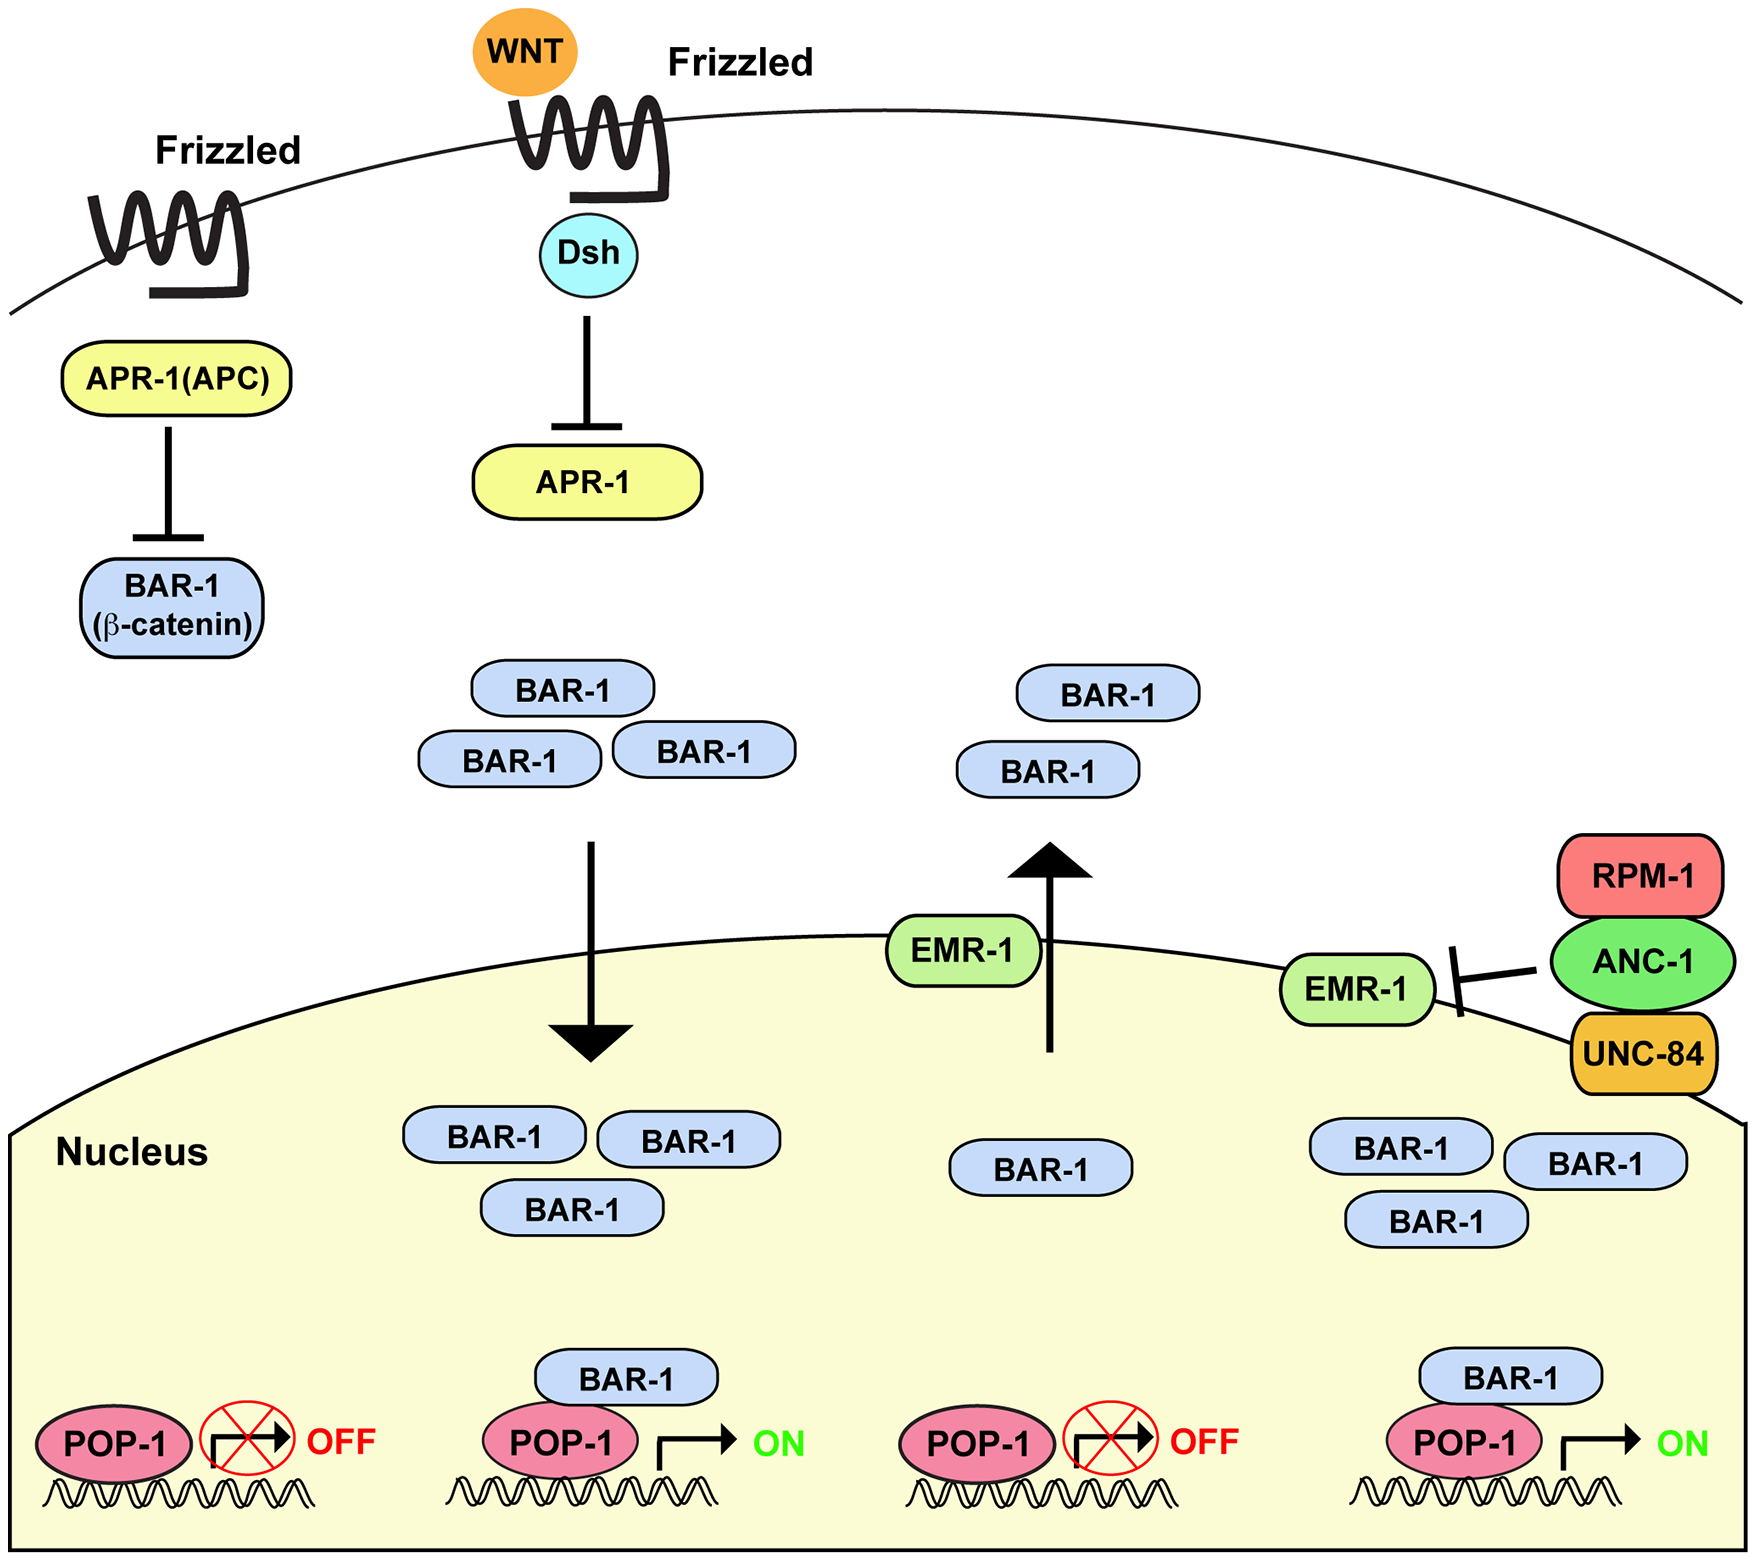 Summary of RPM-1 signaling through the ANC-1/BAR-1 pathway.